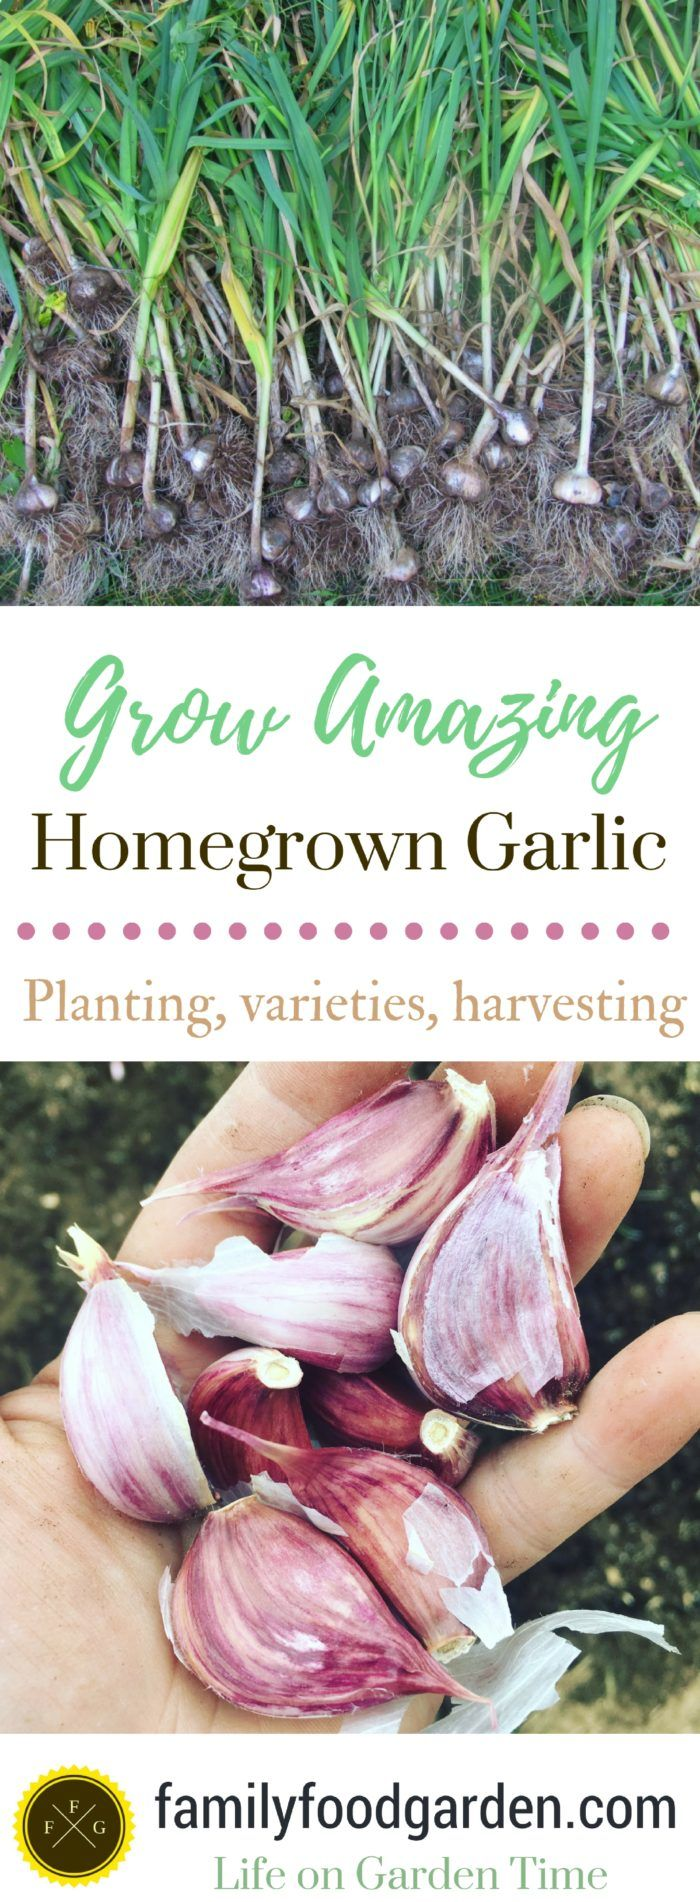 Growing garlic is very rewarding. When should you plant garlic? You can plant spring garlic, but growing garlic in the fall is better. Garlic seed versus garlic bulbs, where to buy garlic bulbs, hardneck vs softneck garlic, planting sprouted garlic & why you shouldn't plant store bought garlic, when to harvest garlic